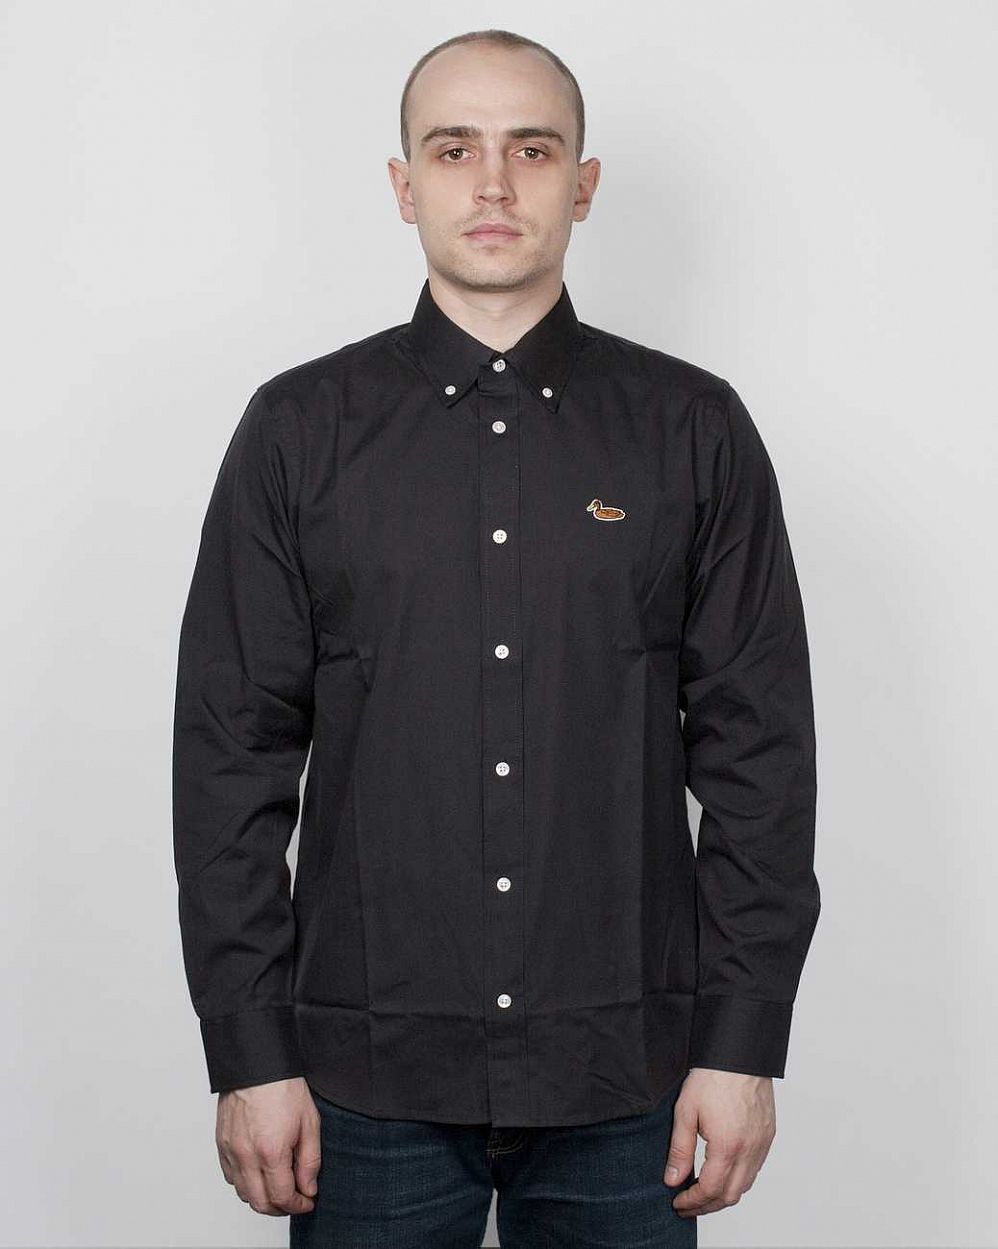 Рубашка Carhartt L/S Duck Shirt Crow Black отзывы